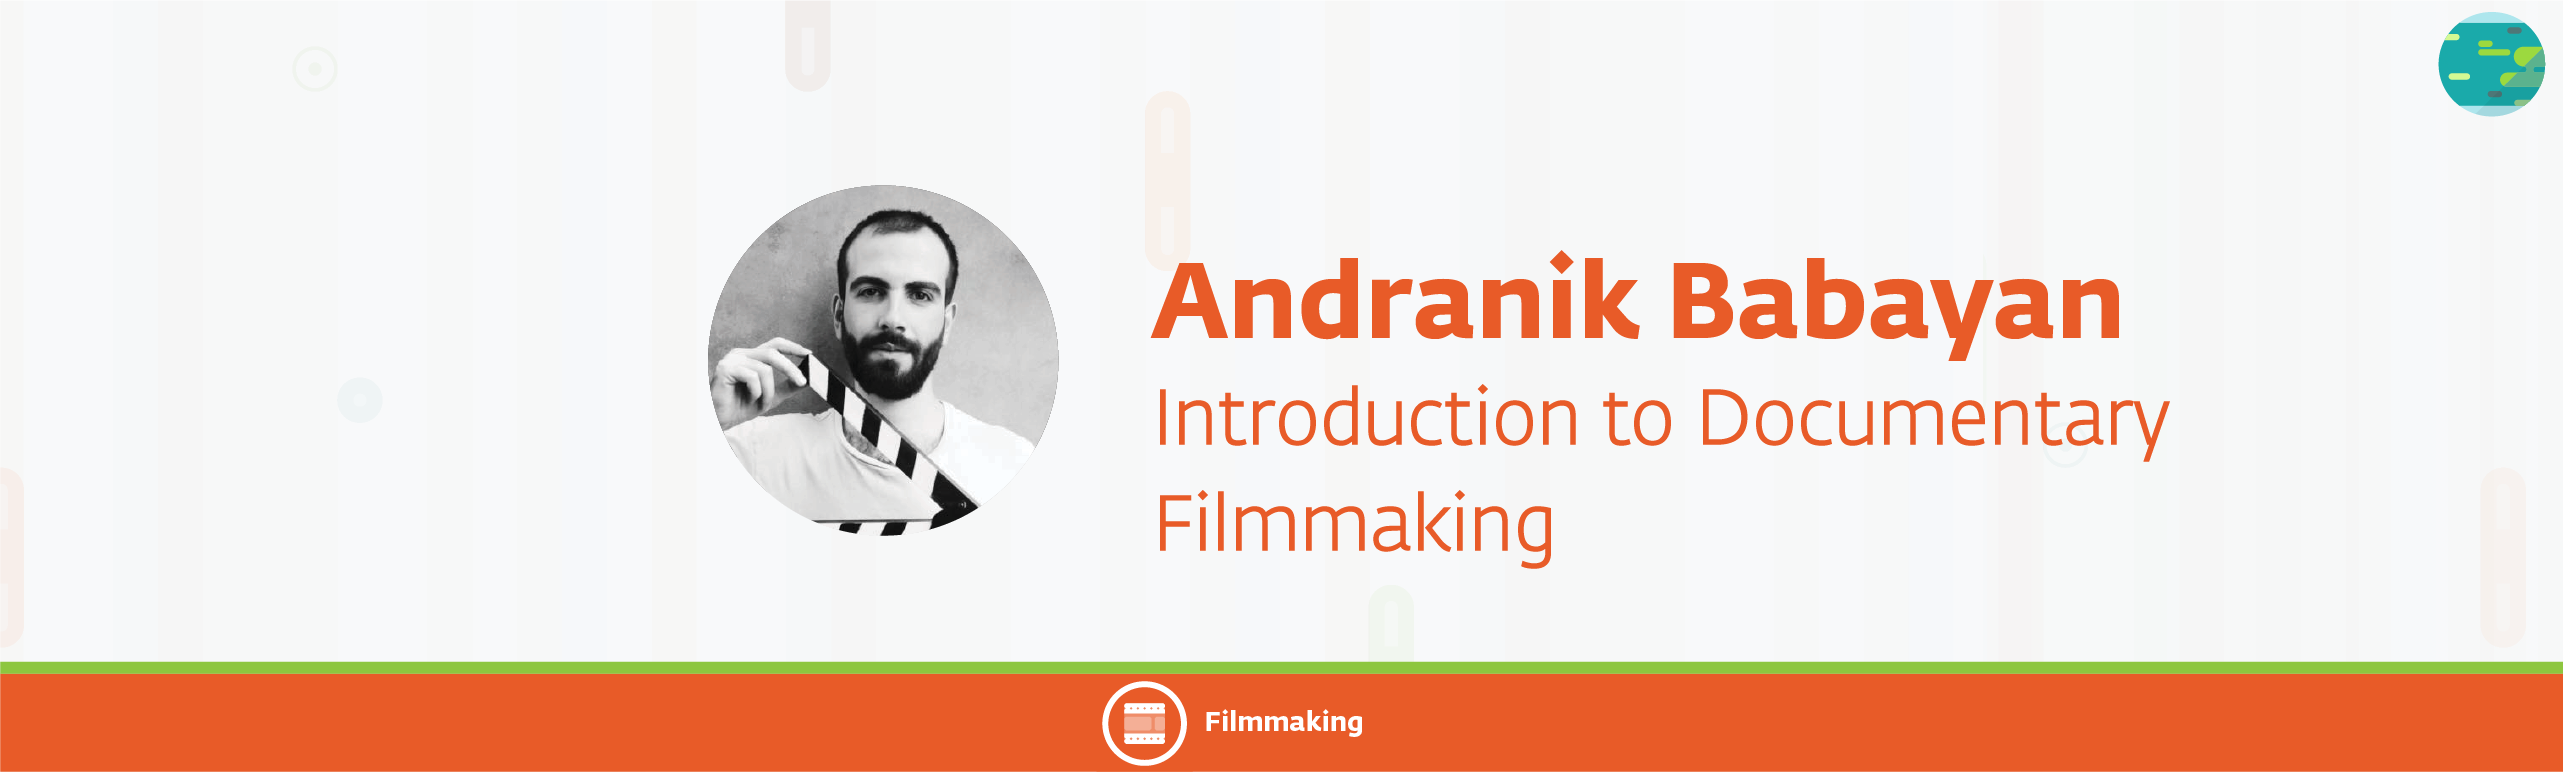 andranik babayan 51 - Introduction to Documentary Filmmaking